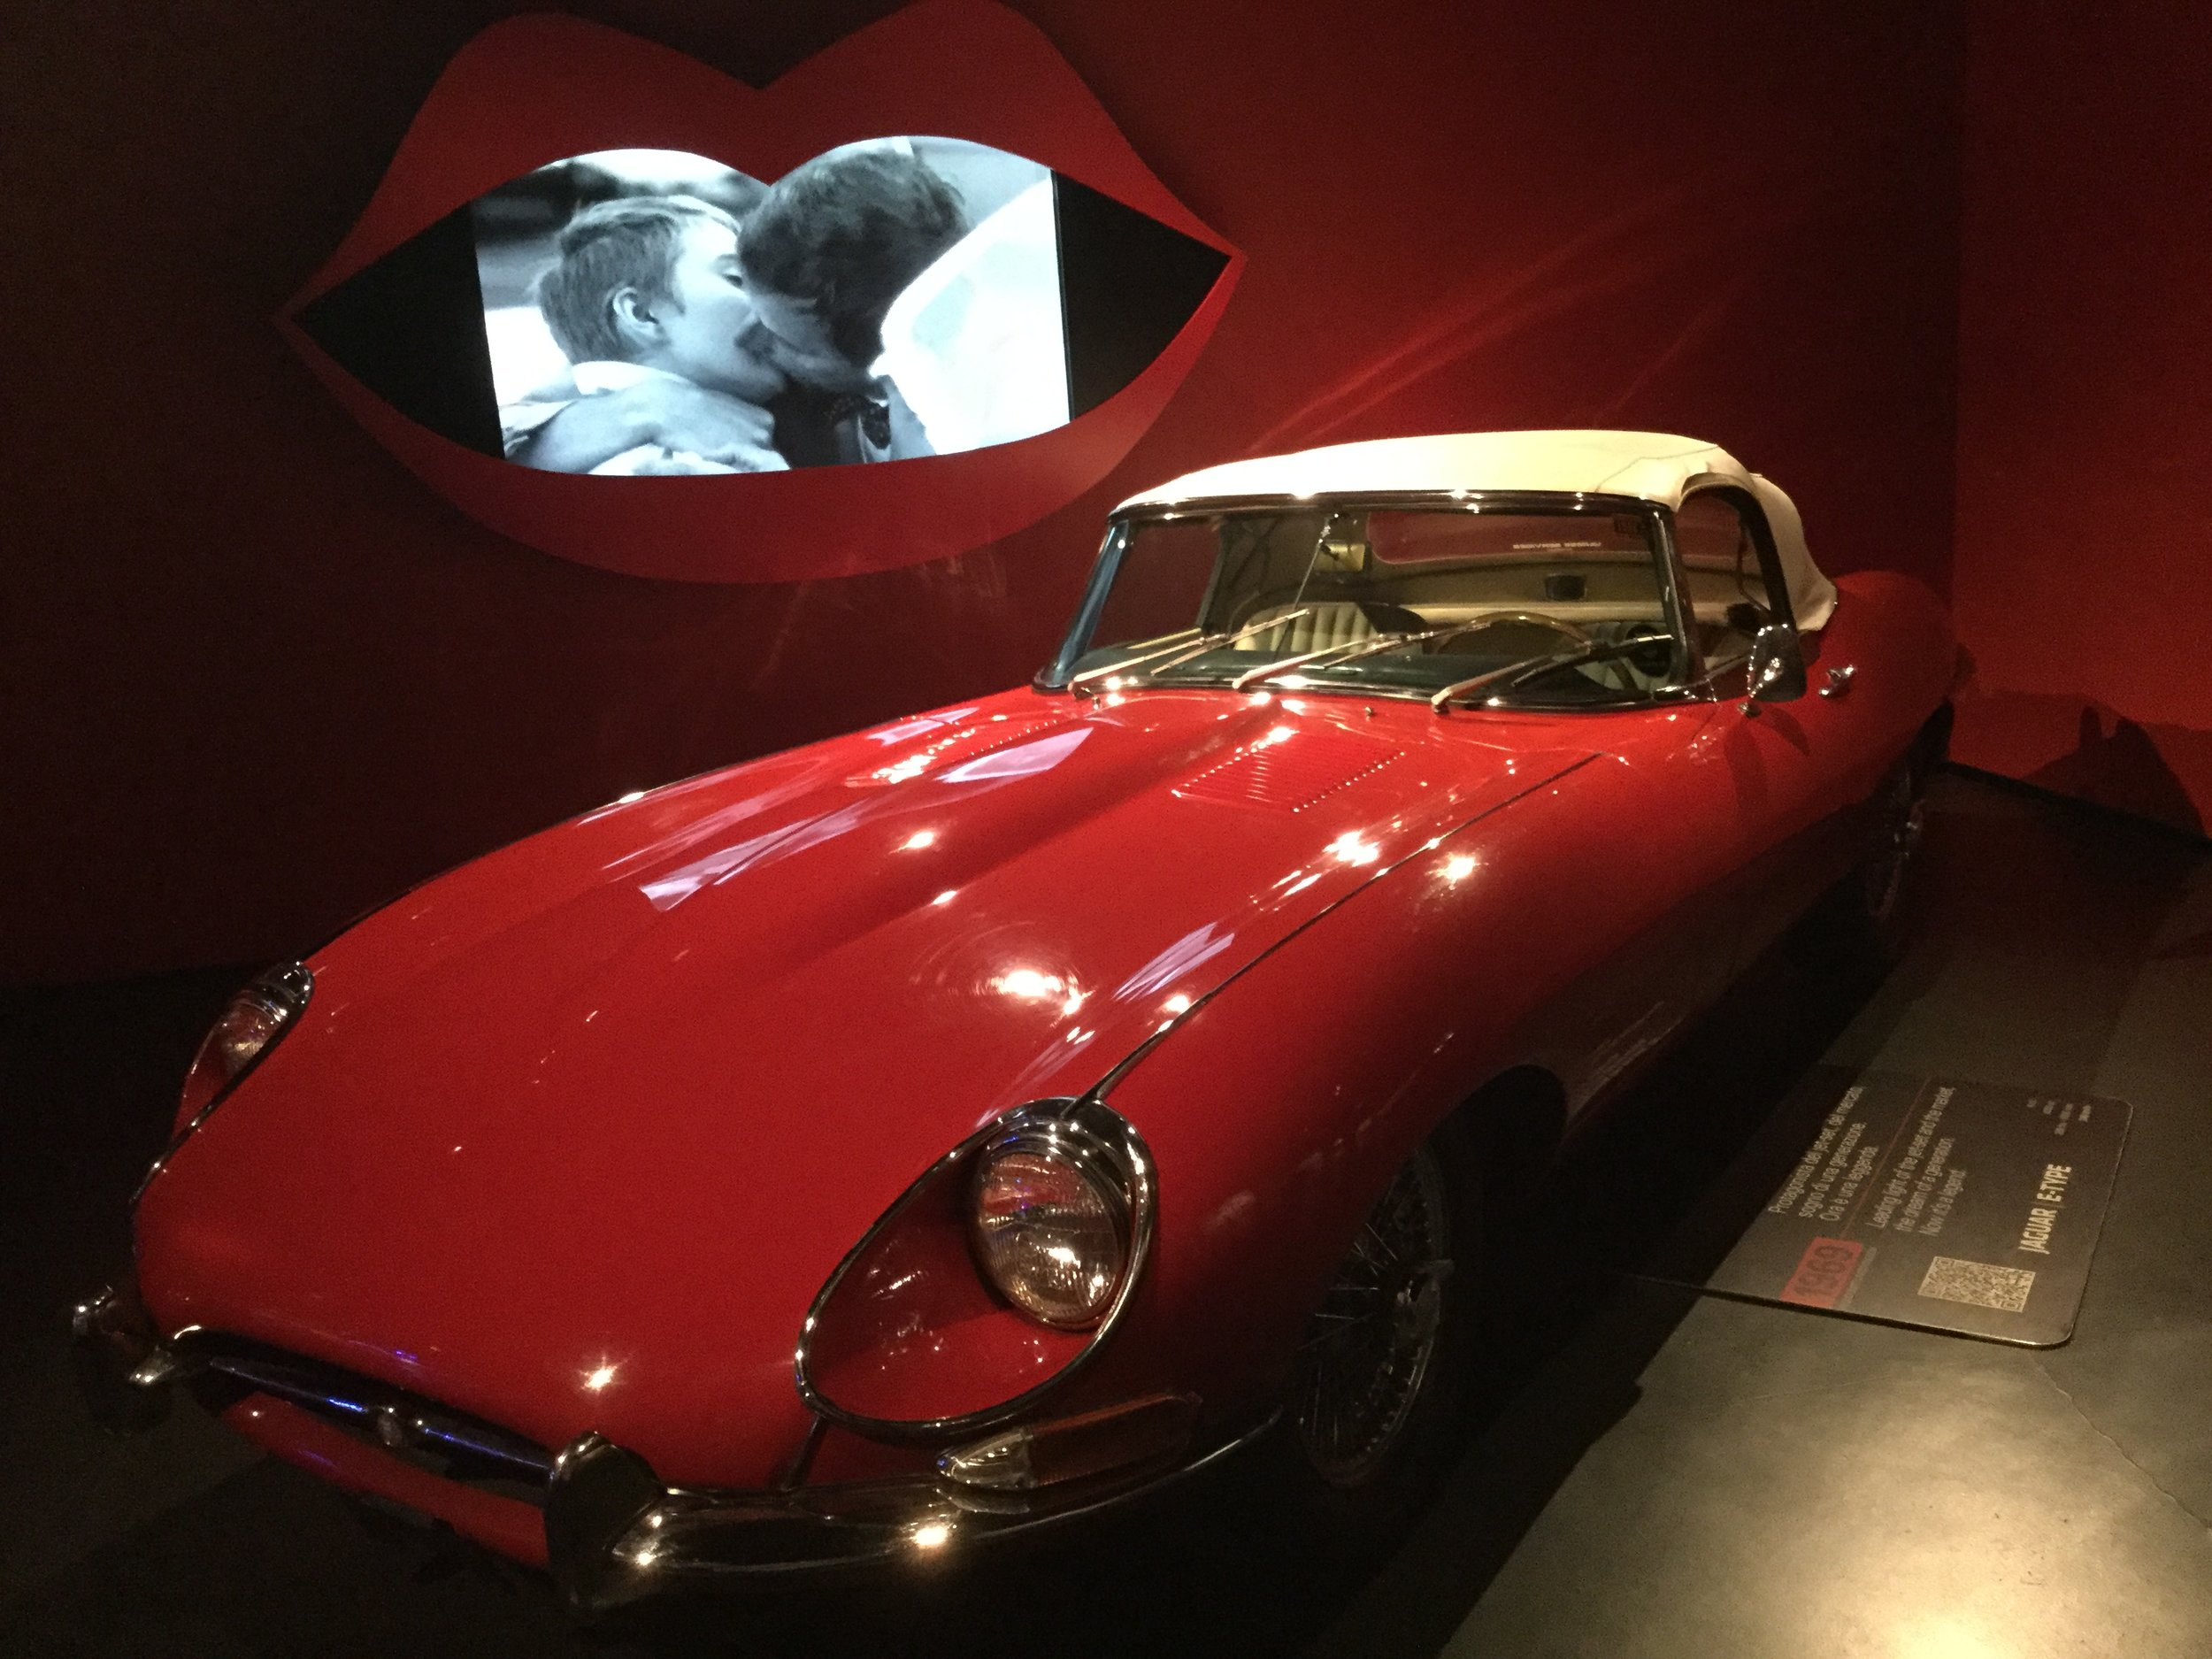 This Jag was portrayed with movie clips suggesting it will really get you that girl...